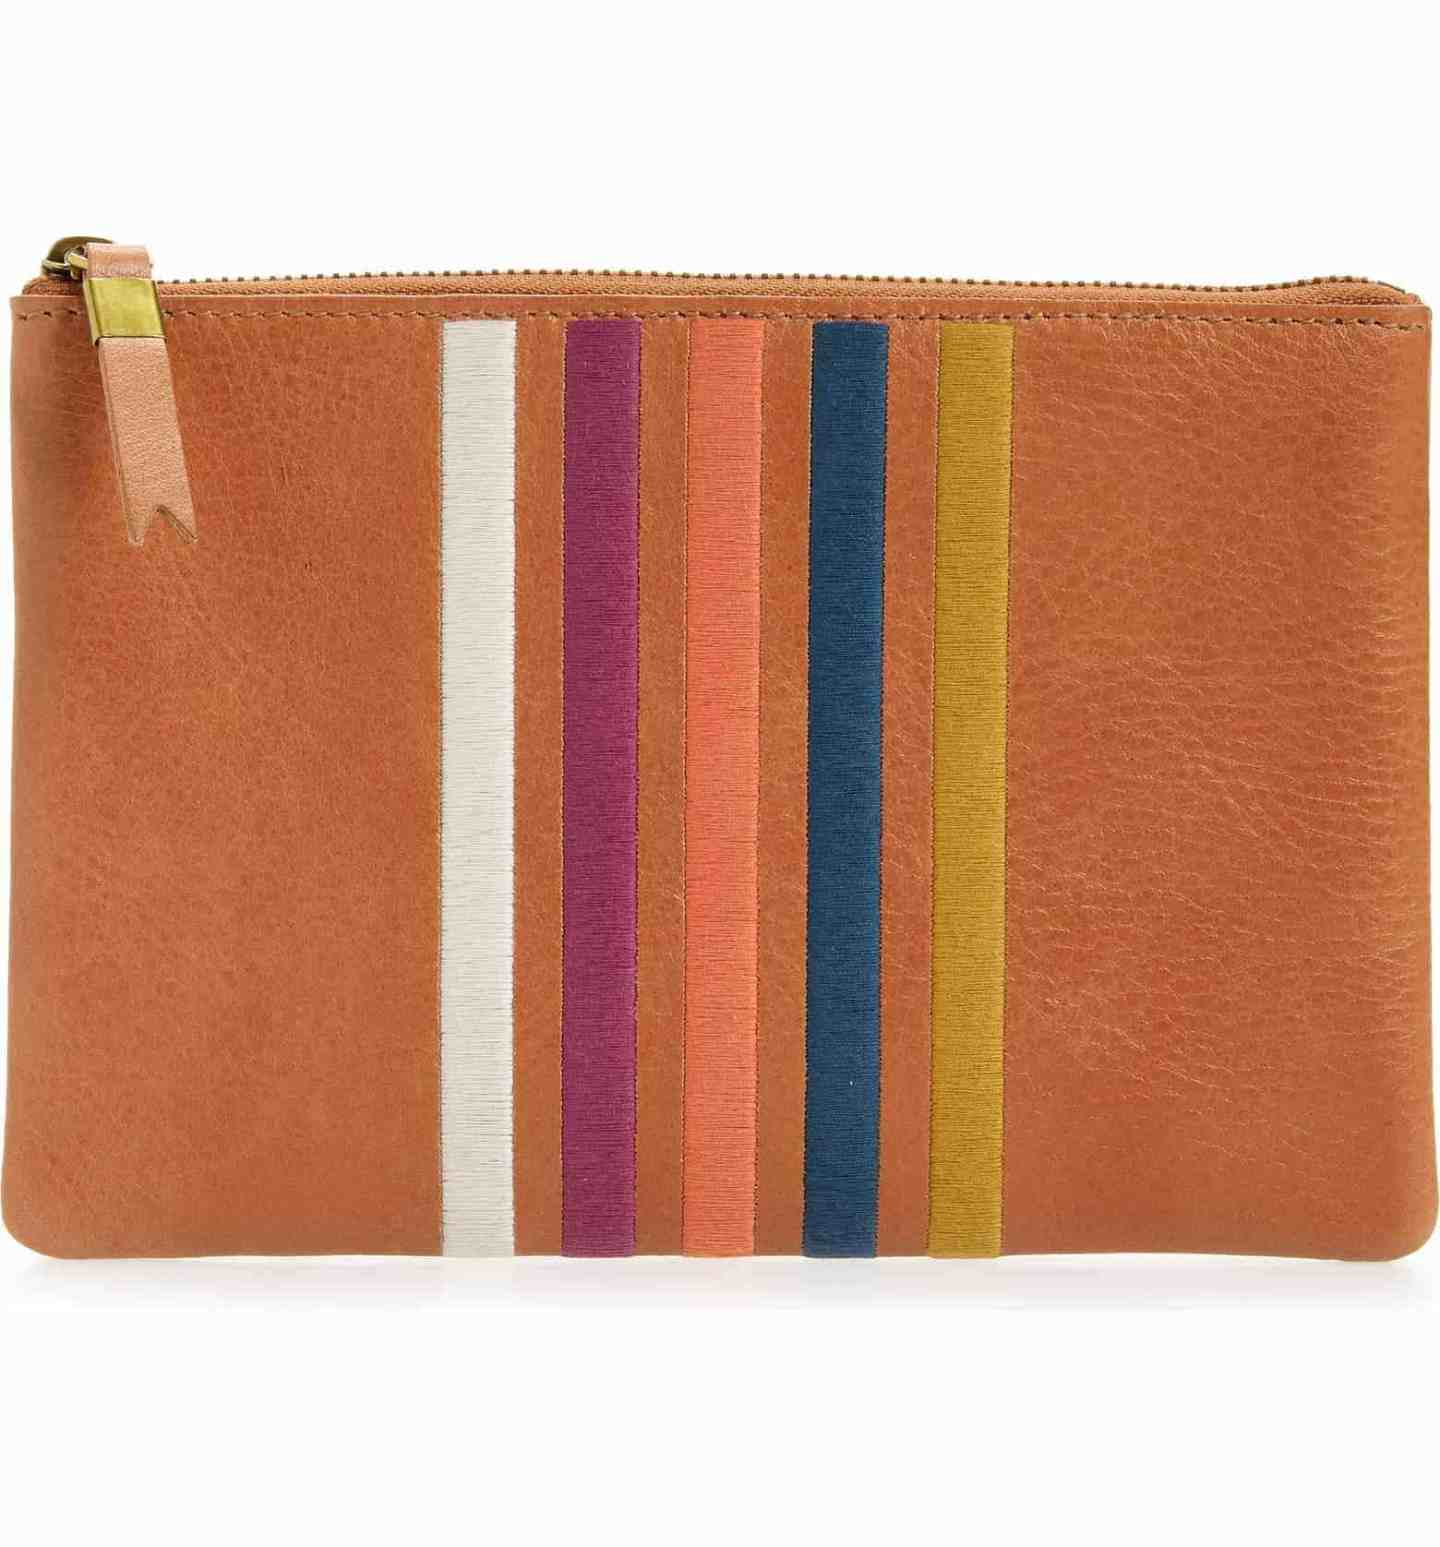 Leather-Pouch-Clutch-with-Rainbow-Stripes